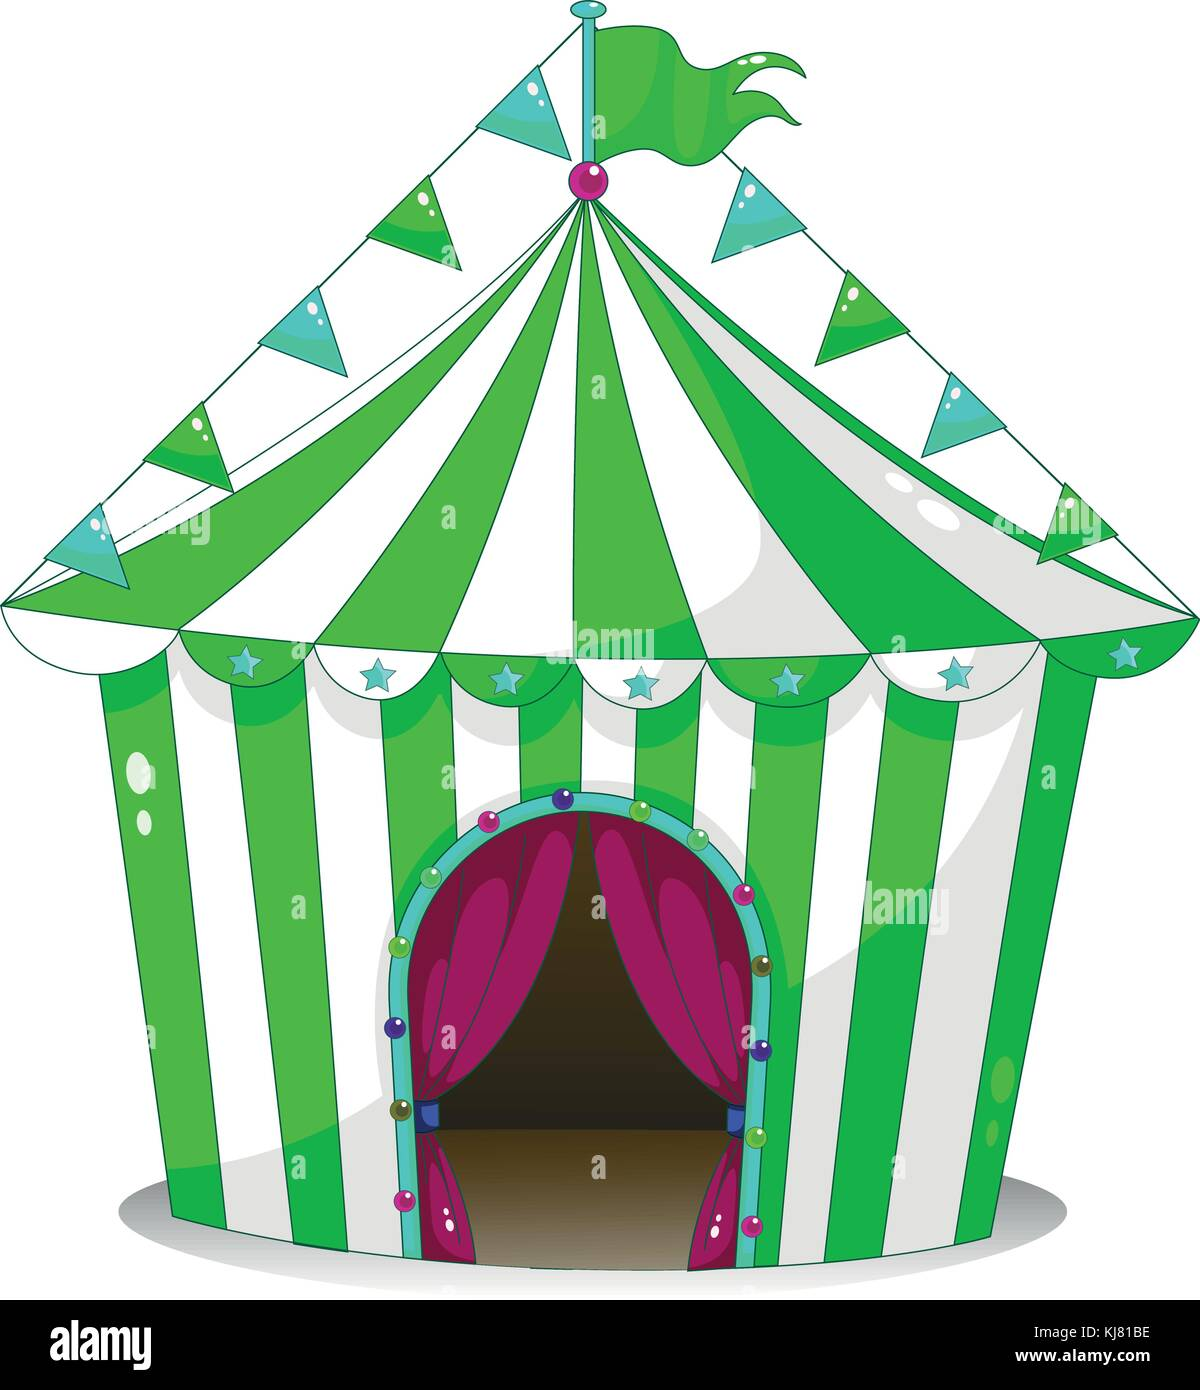 Illustration of a green circus tent on a white background - Stock Vector